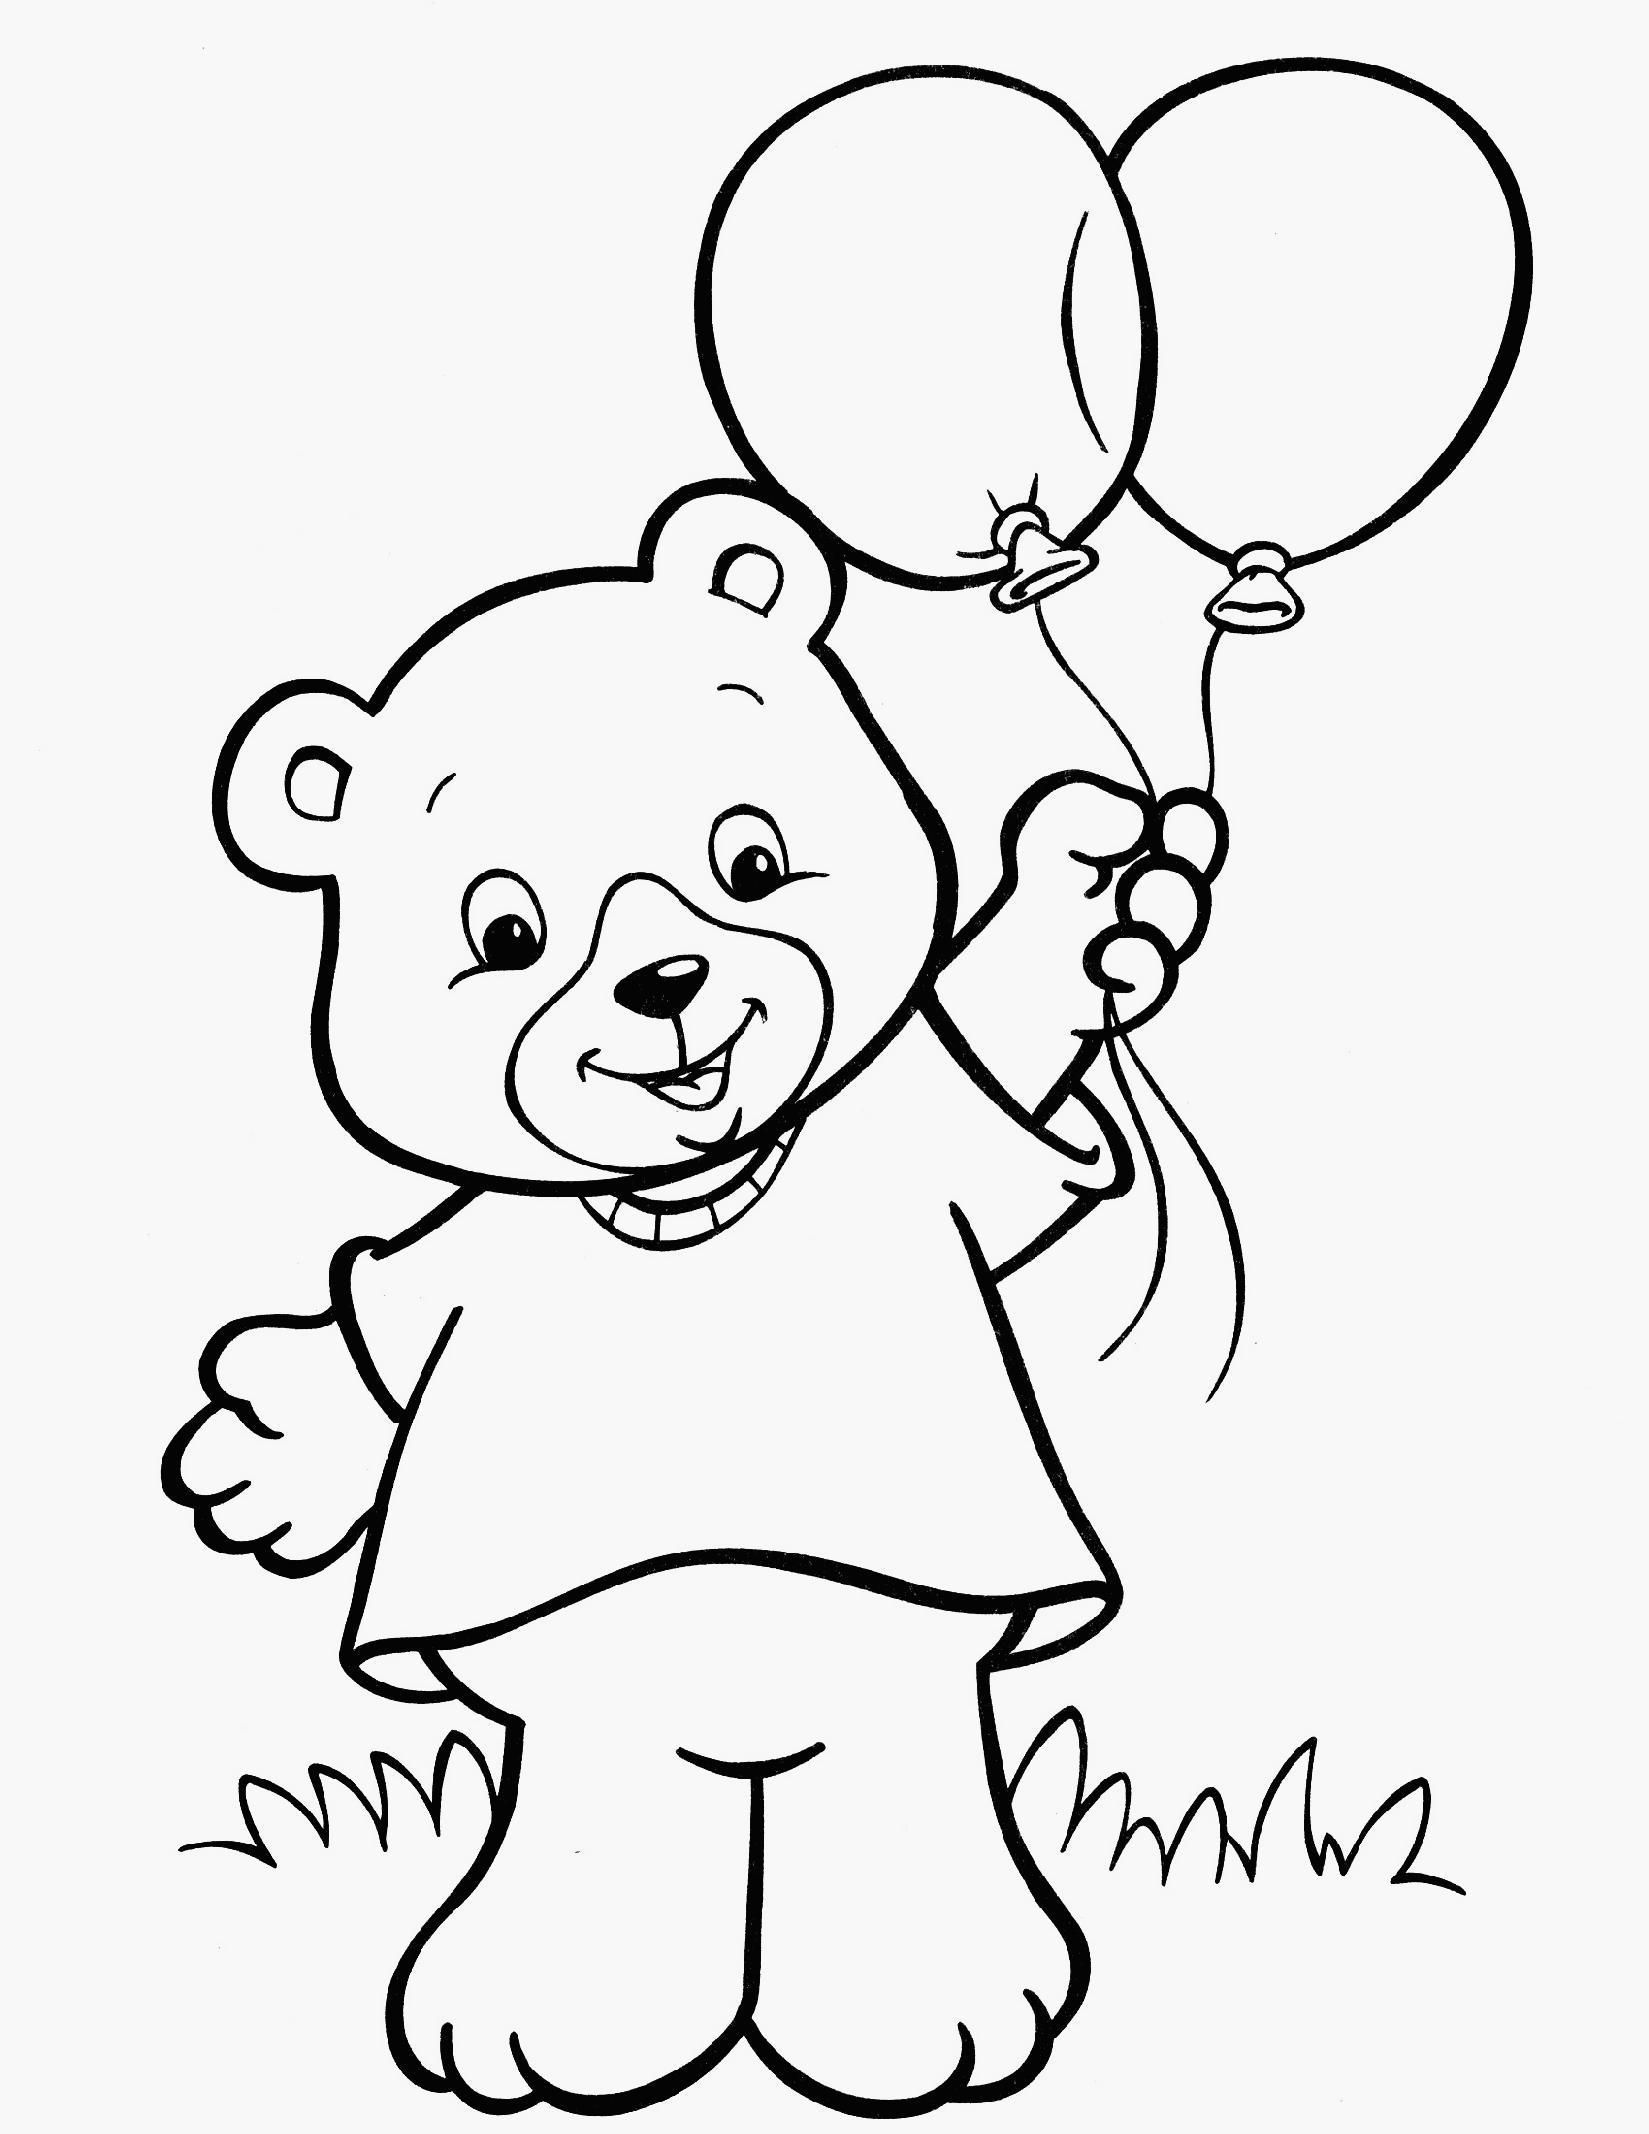 printable coloring sheets for 4 year olds 4 year old coloring page coloring home 4 printable sheets for olds year coloring